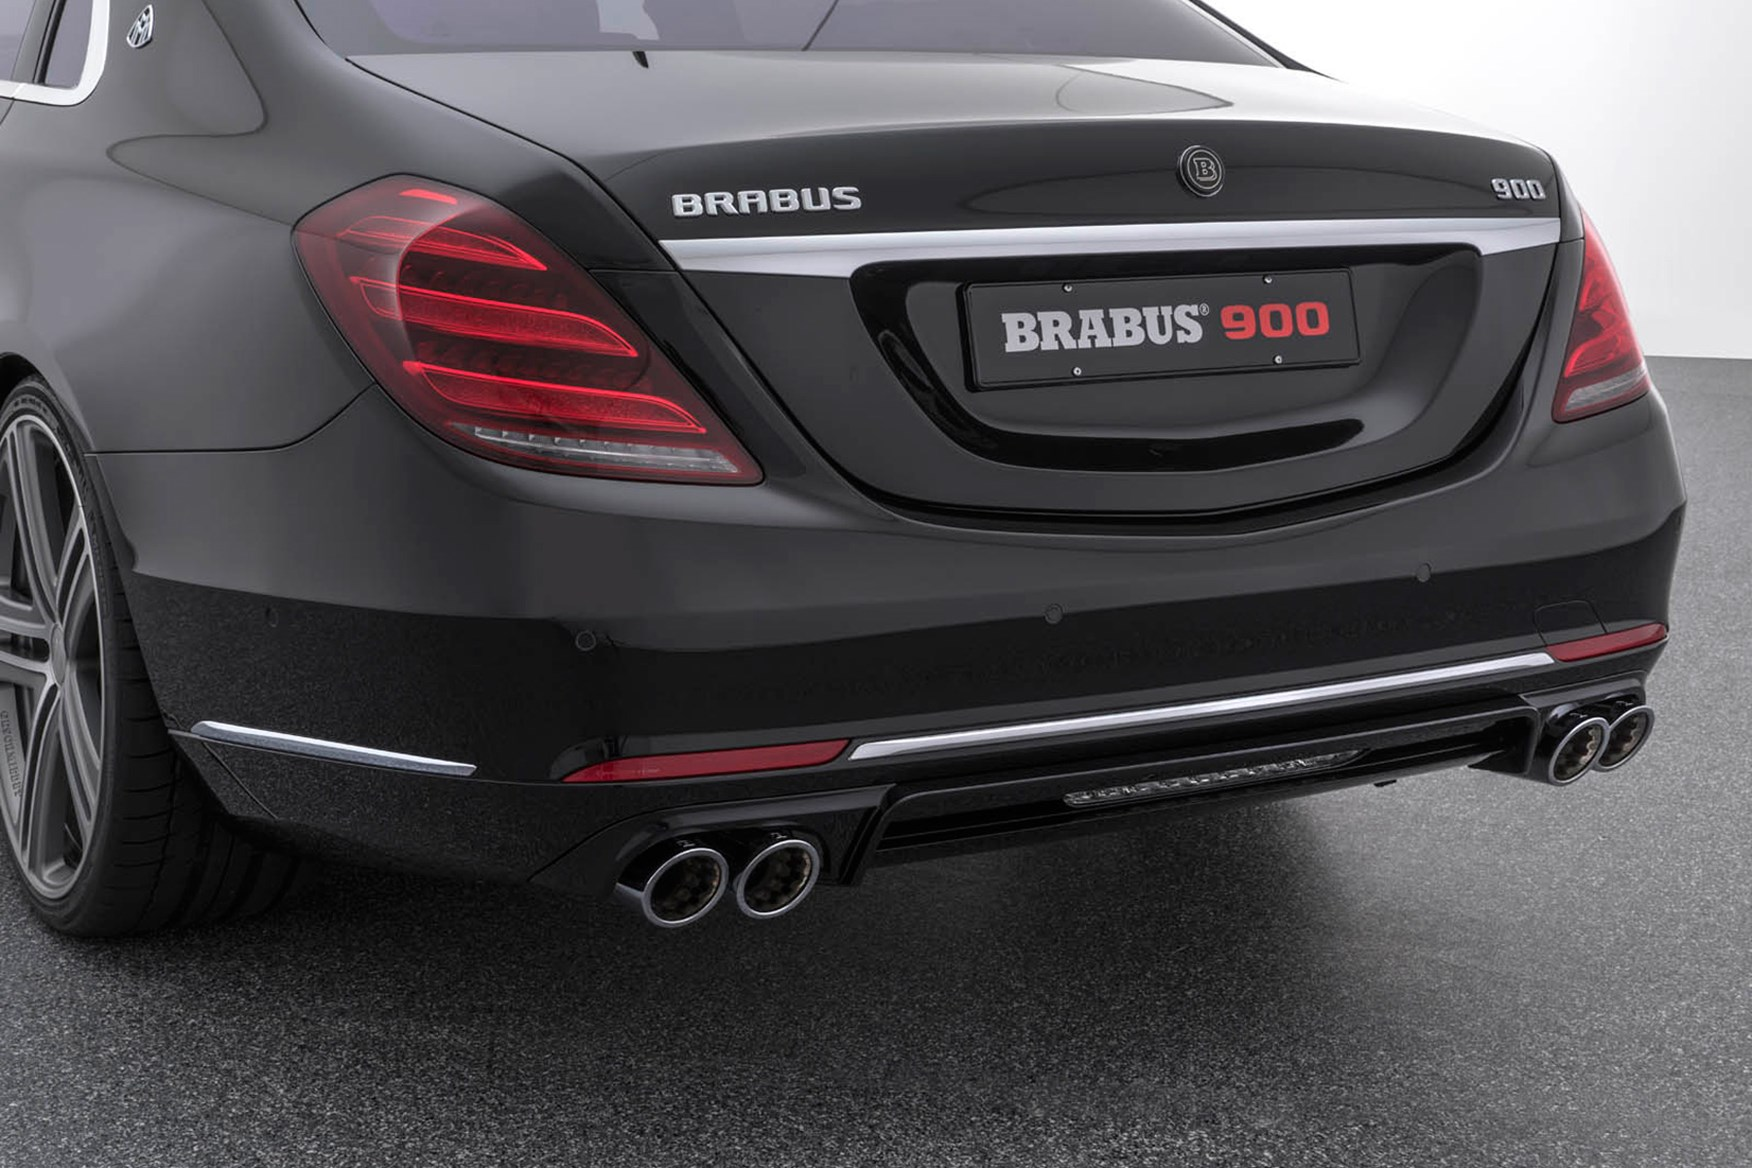 Demonic limo: Mercedes S-class facelift gets 888bhp Brabus ...